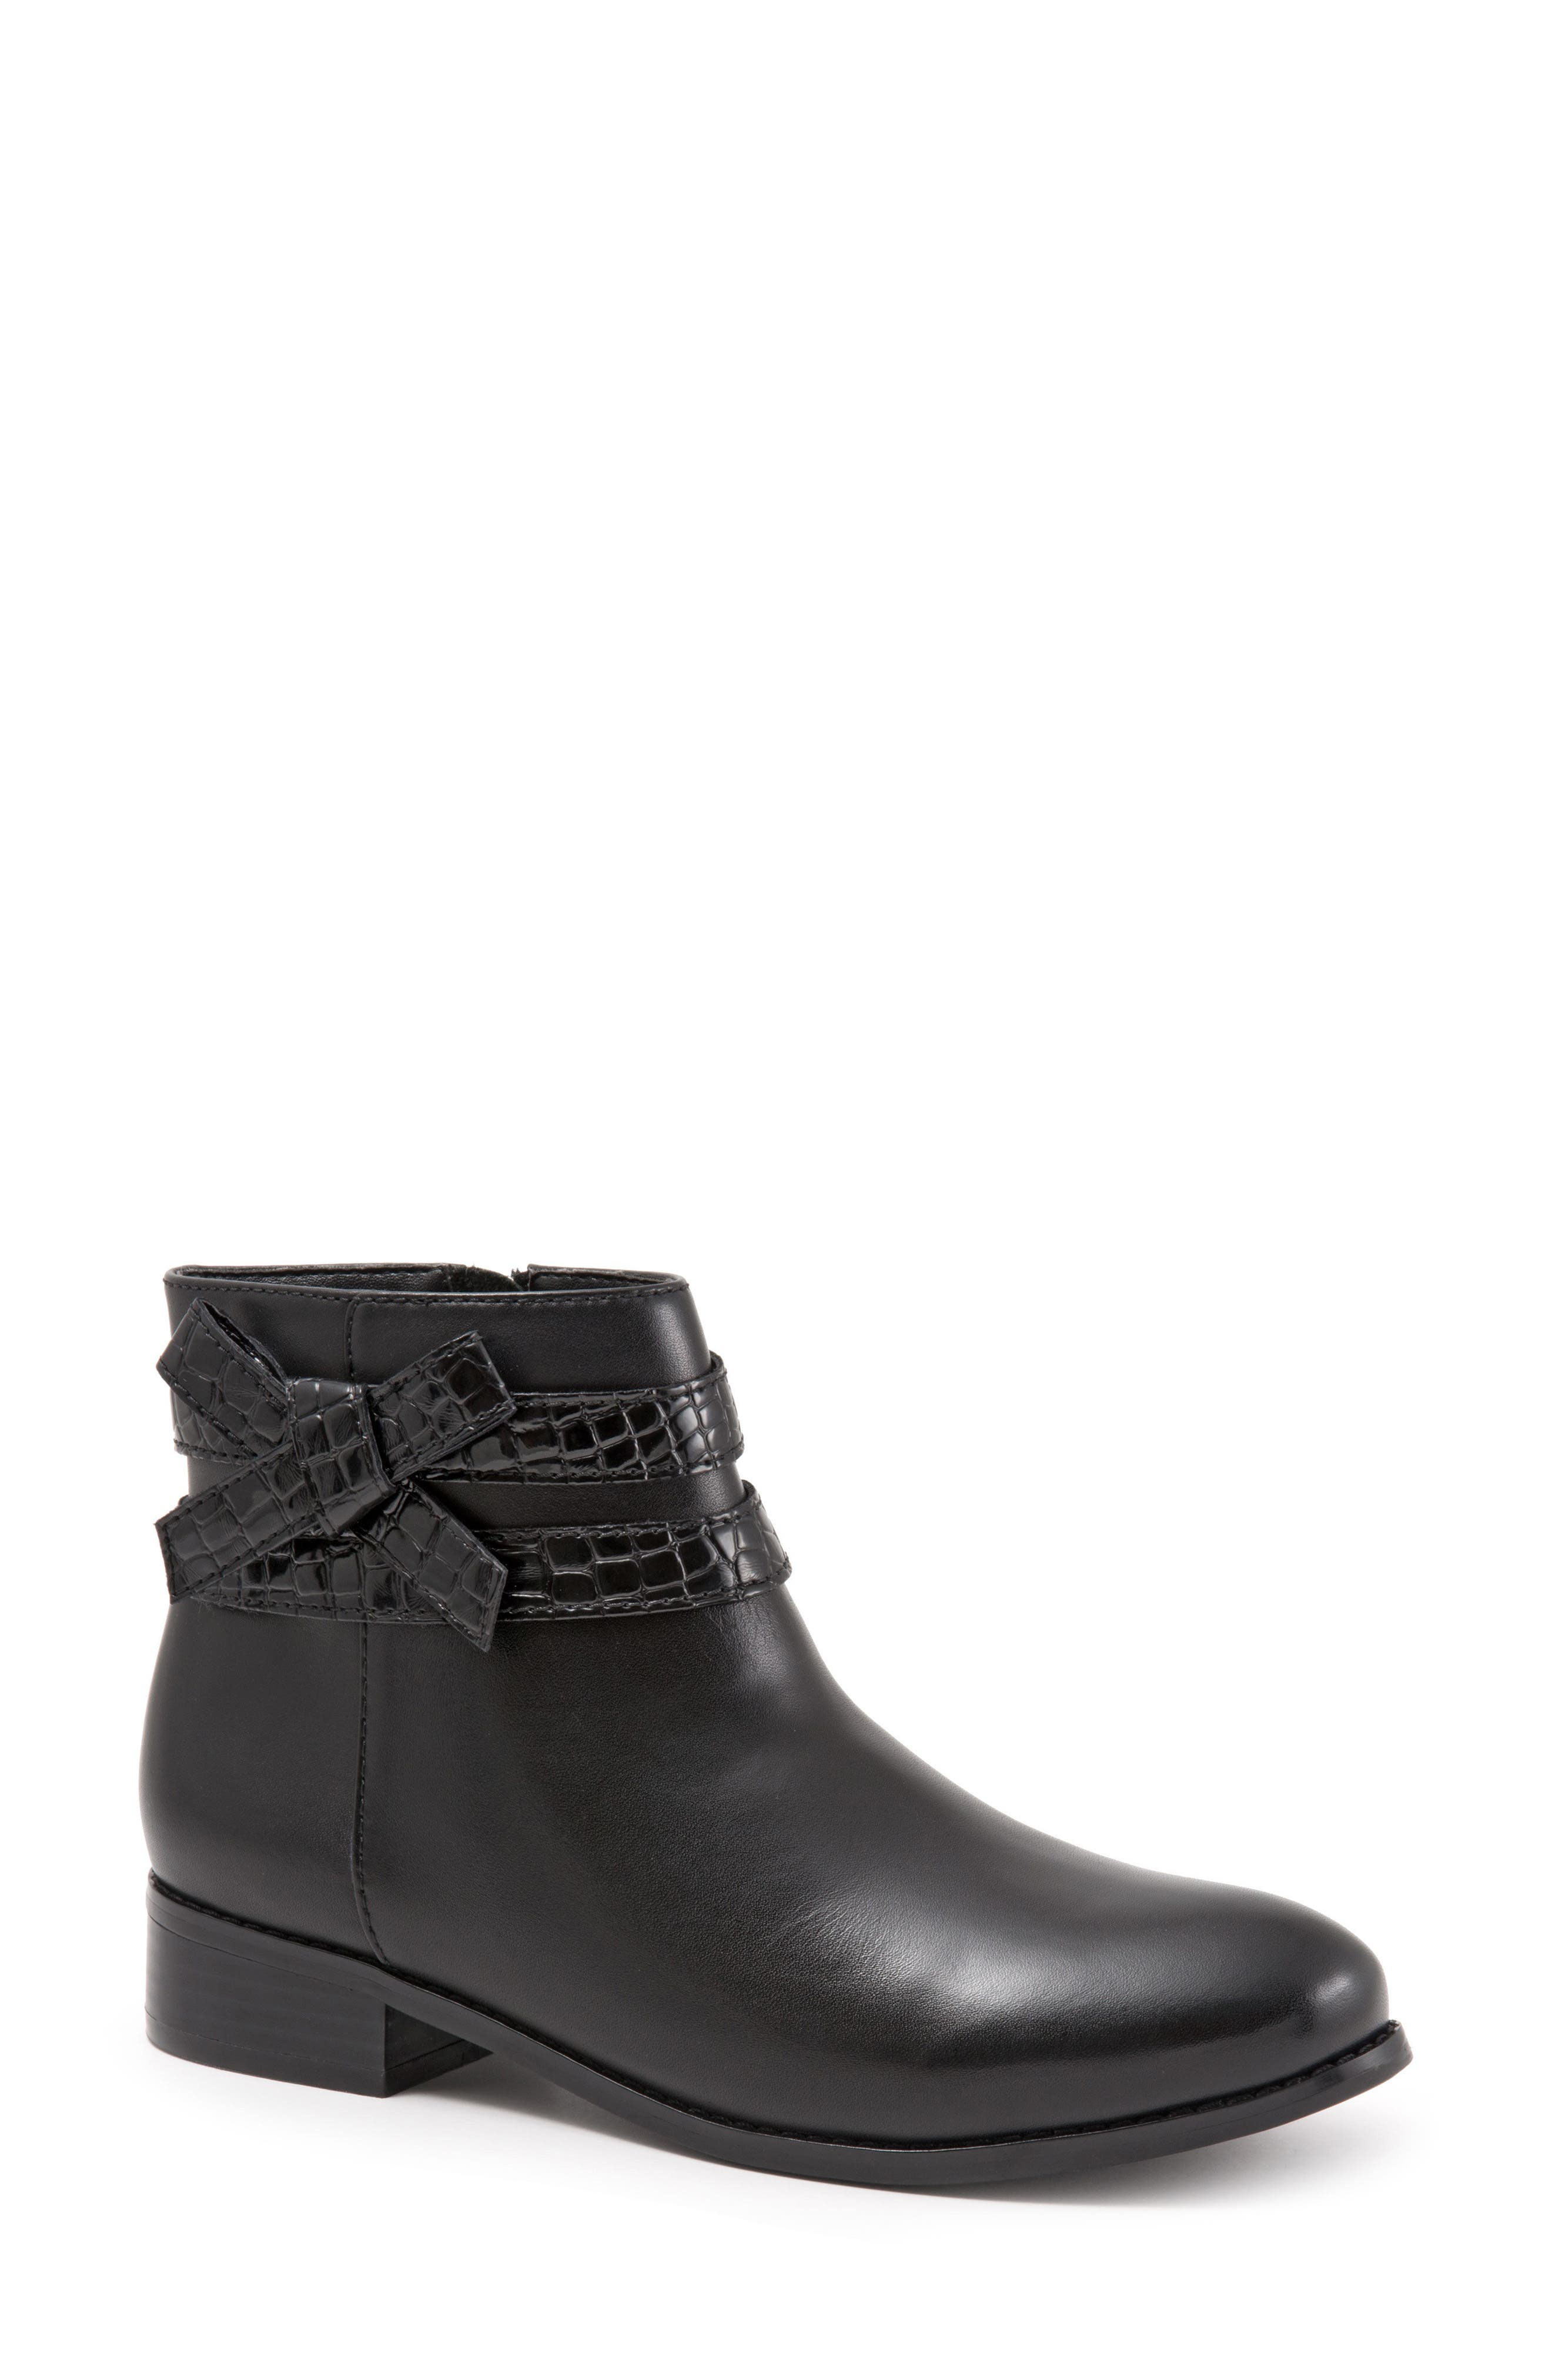 Trotters 'Luxury' Bootie (Women)